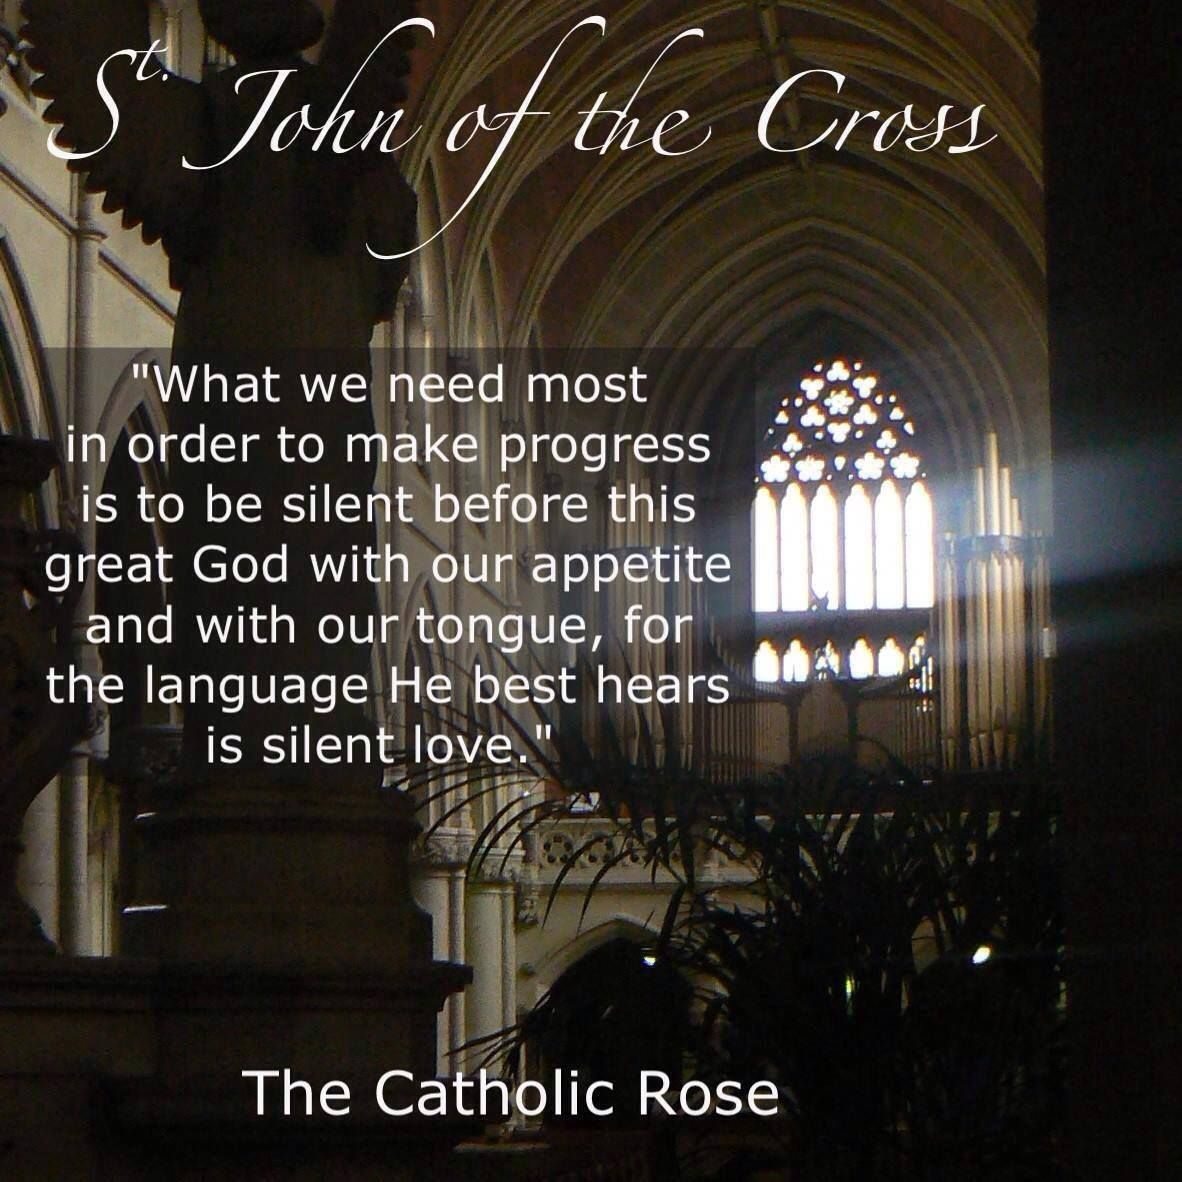 St John Of The Cross Quotes Stjohn Of The Cross  Chosen Peace  Pinterest  Saints Saint